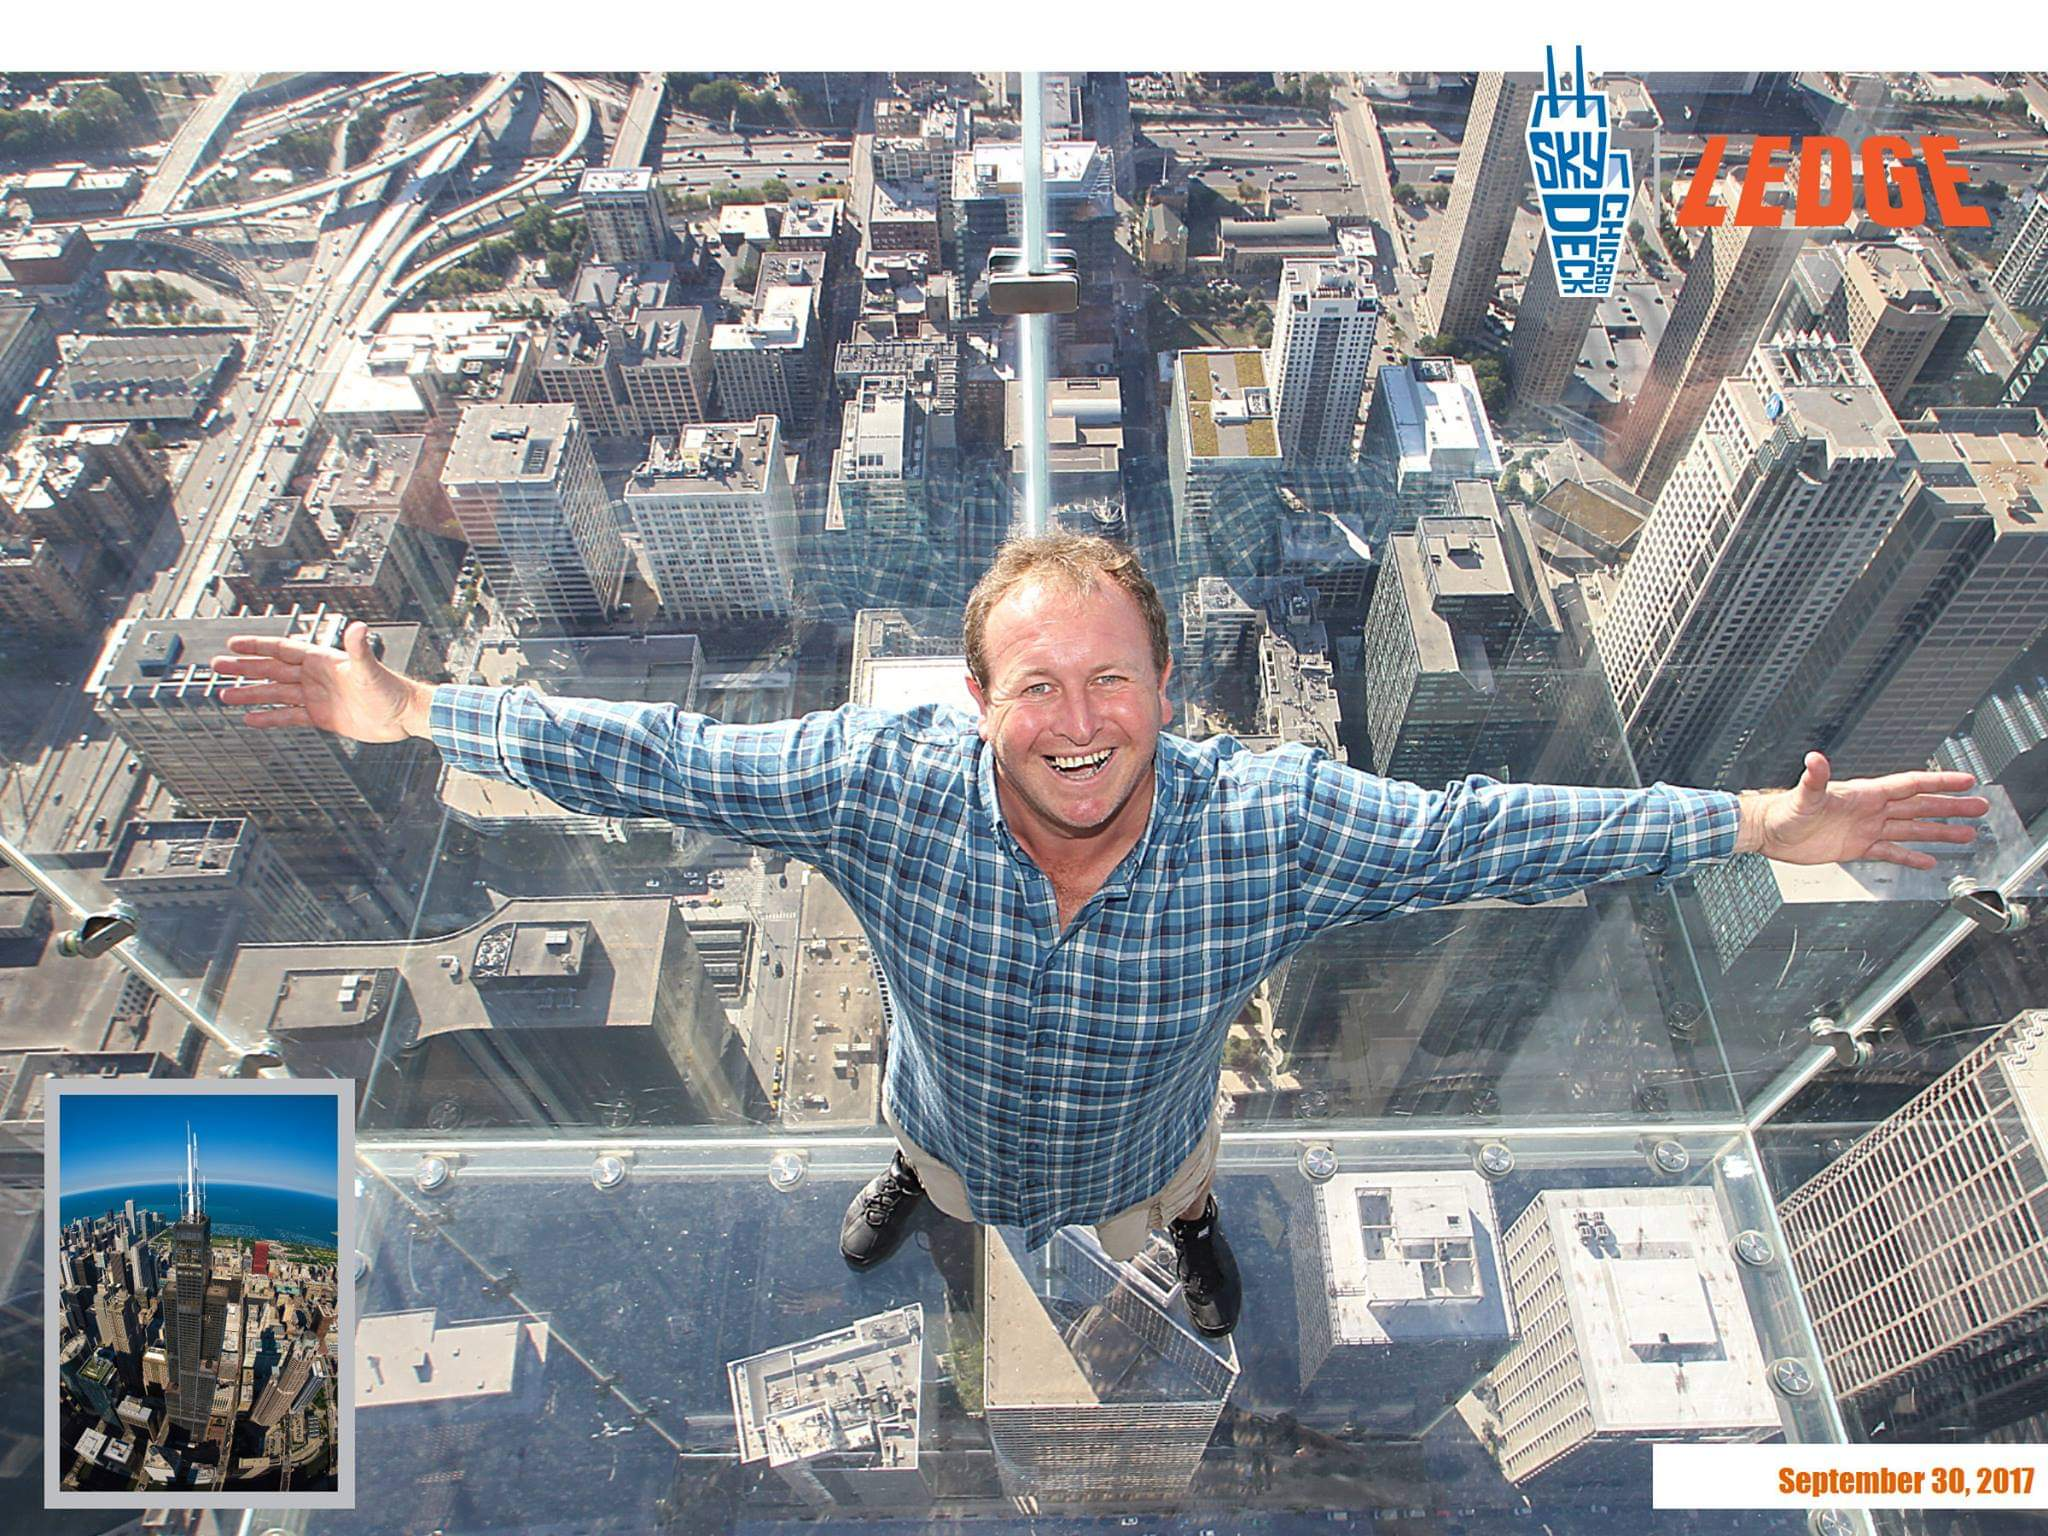 Chicago, USA. 1,353 feet in the air, the Ledge's glass boxes extend out 4.3 feet from the Willis Tower